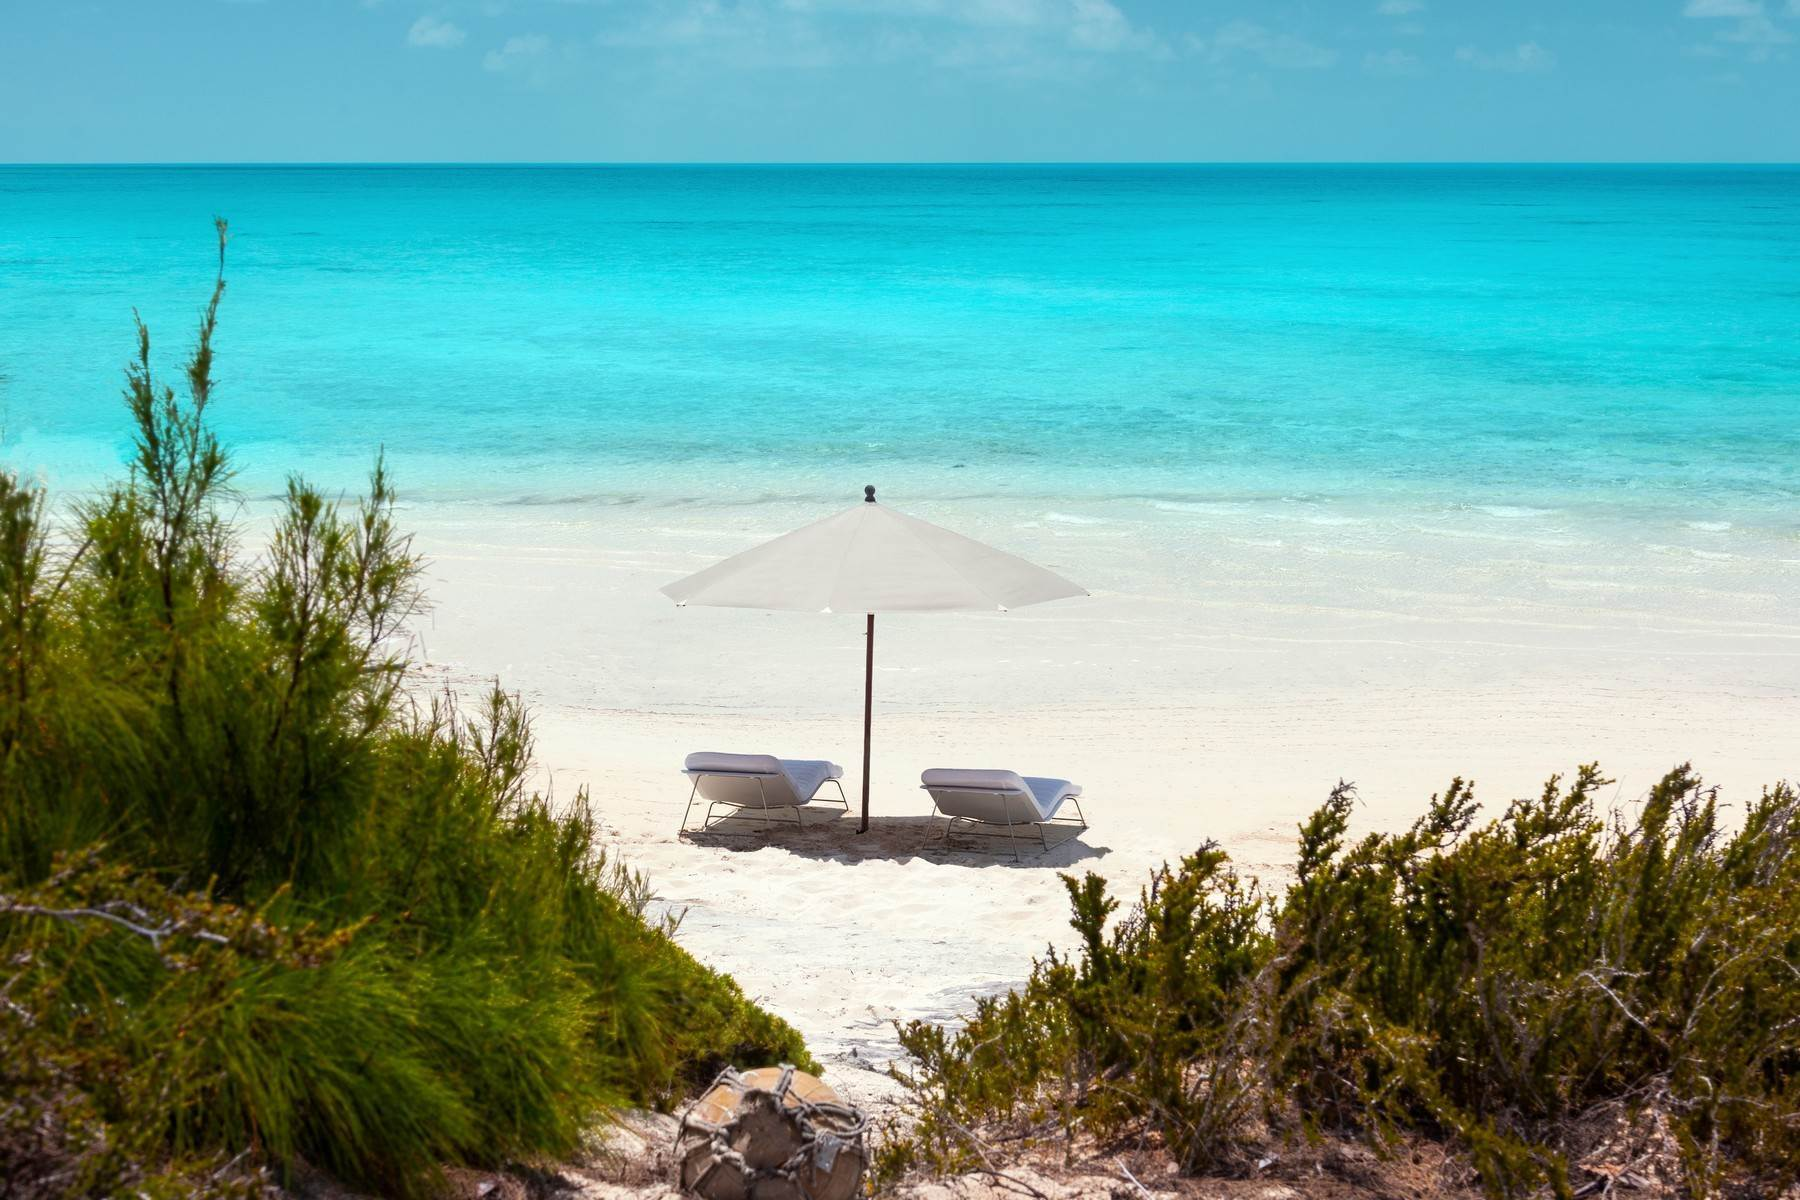 11. Single Family Homes for Sale at LONG BAY BEACH DUNE VILLA 1 AT SOUTH BANK - THE OCEAN ESTATE South Bank, Long Bay, Providenciales Turks And Caicos Islands